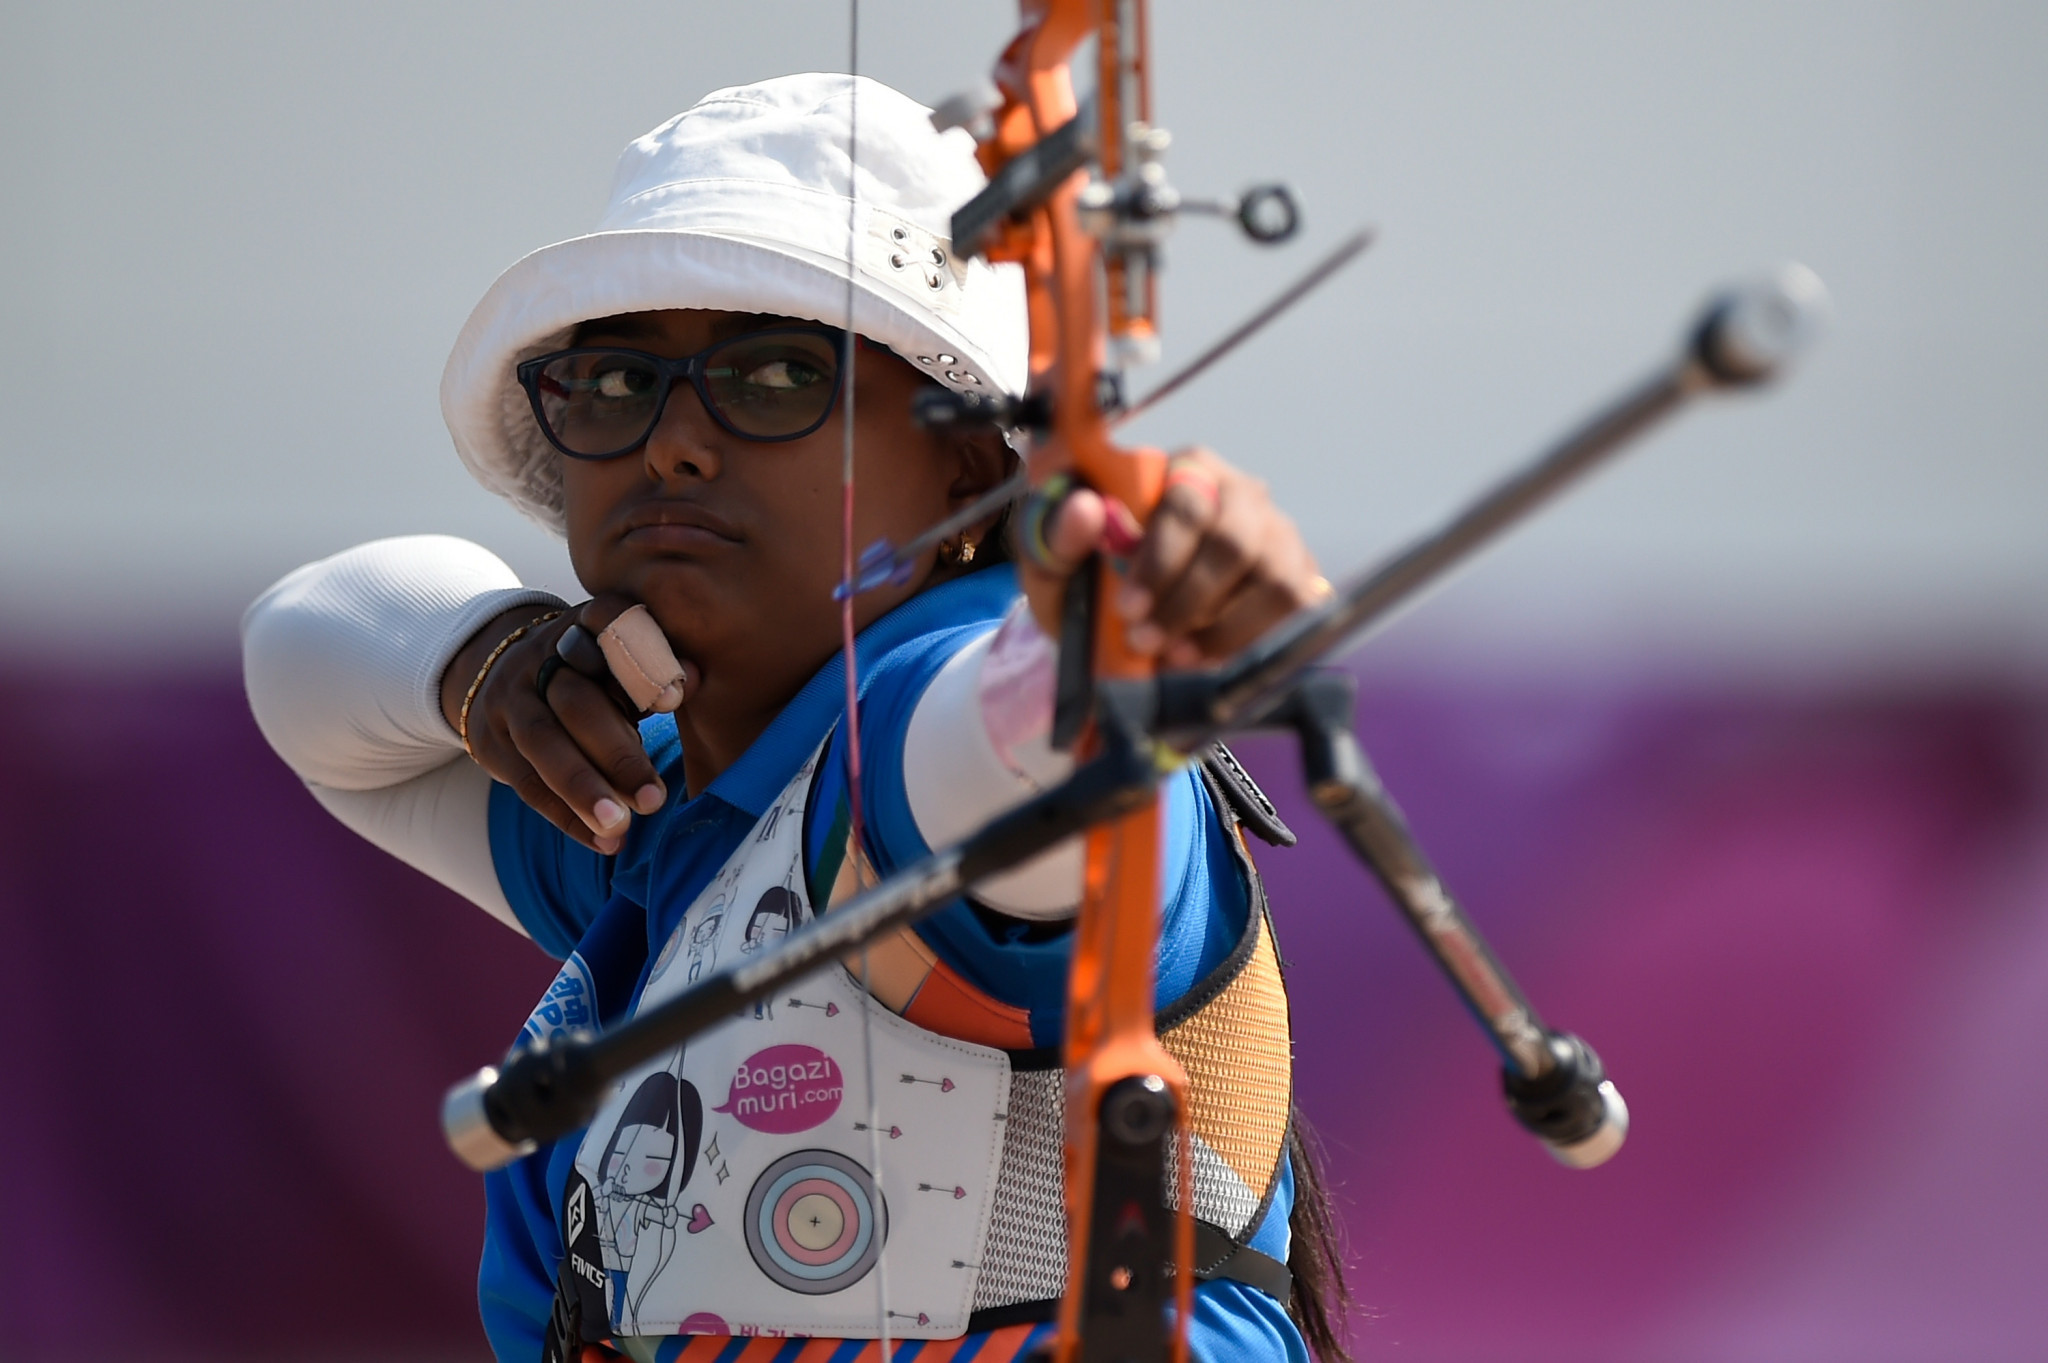 Indian archers competed at the Tokyo 2020 test event and the Archery World Cup in Berlin ©Getty Images